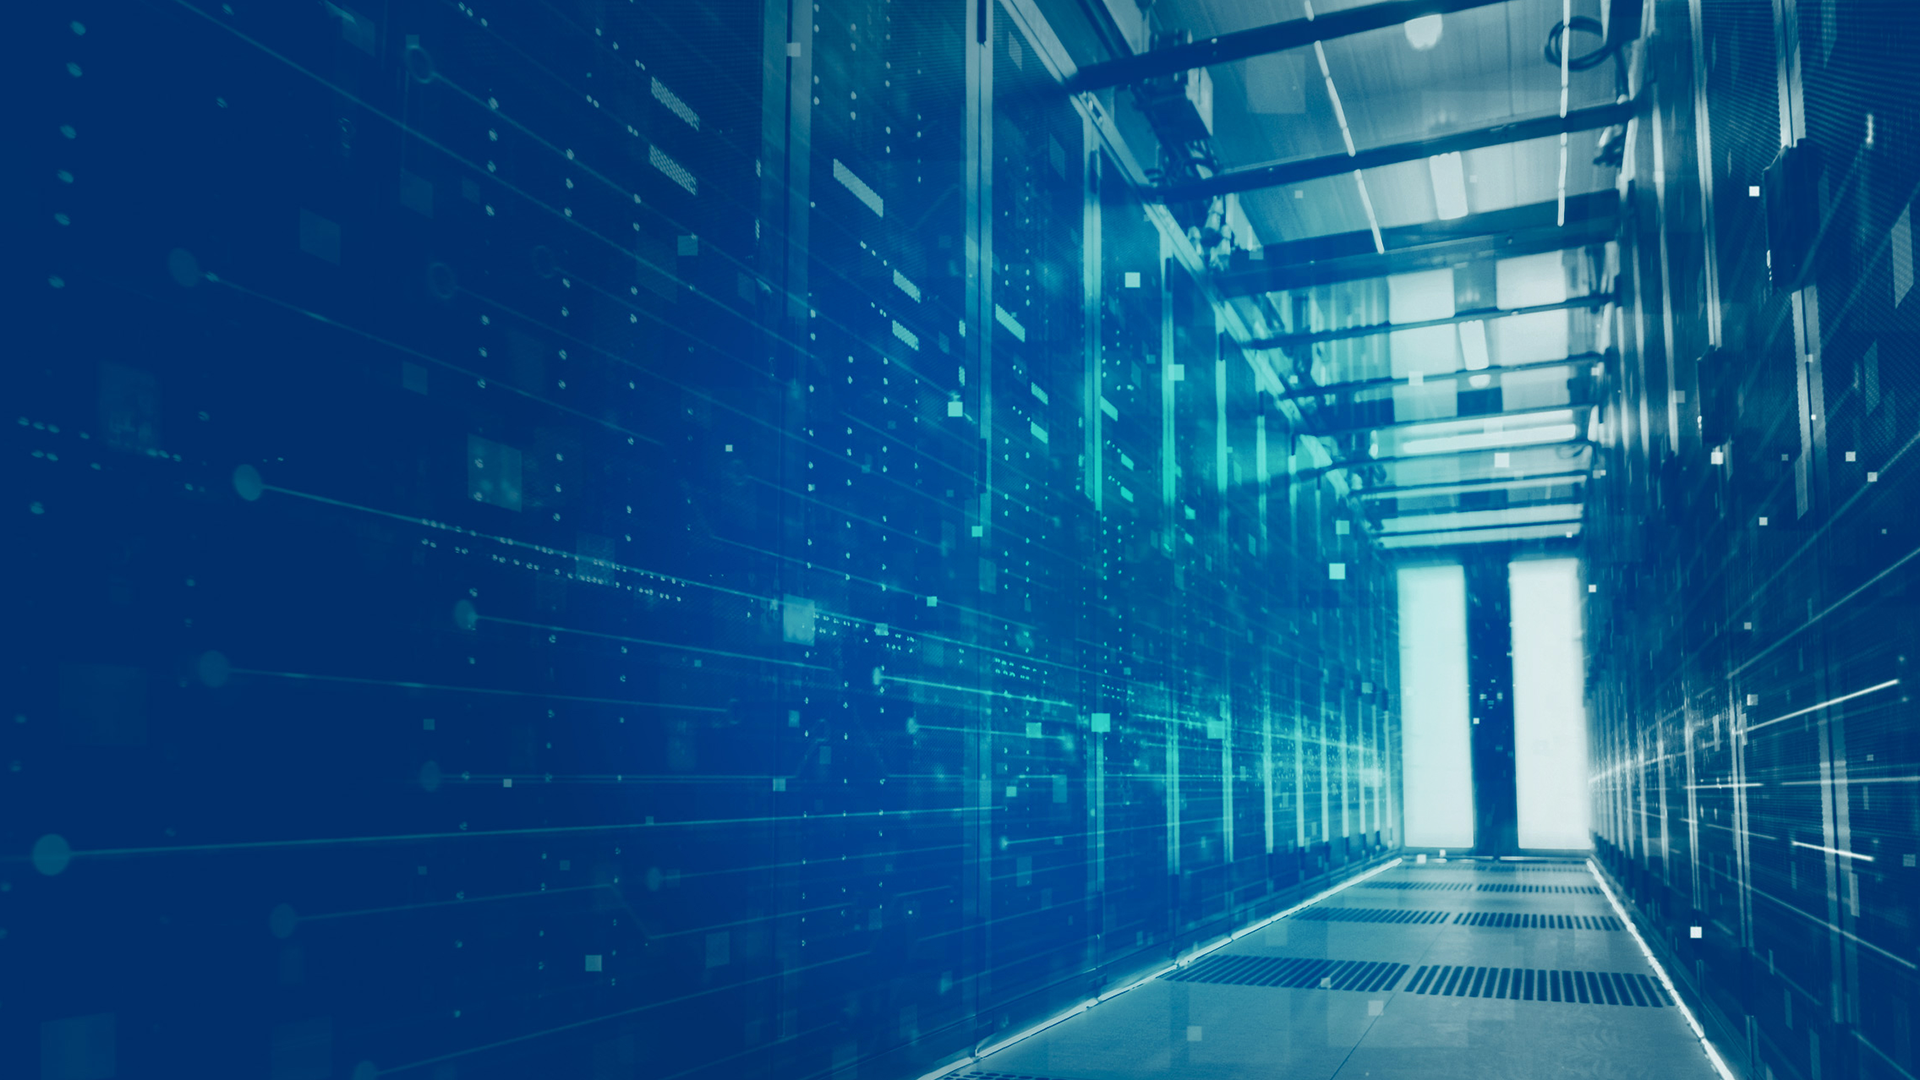 Federal IT leaders report advances in cloud adoption for critical services